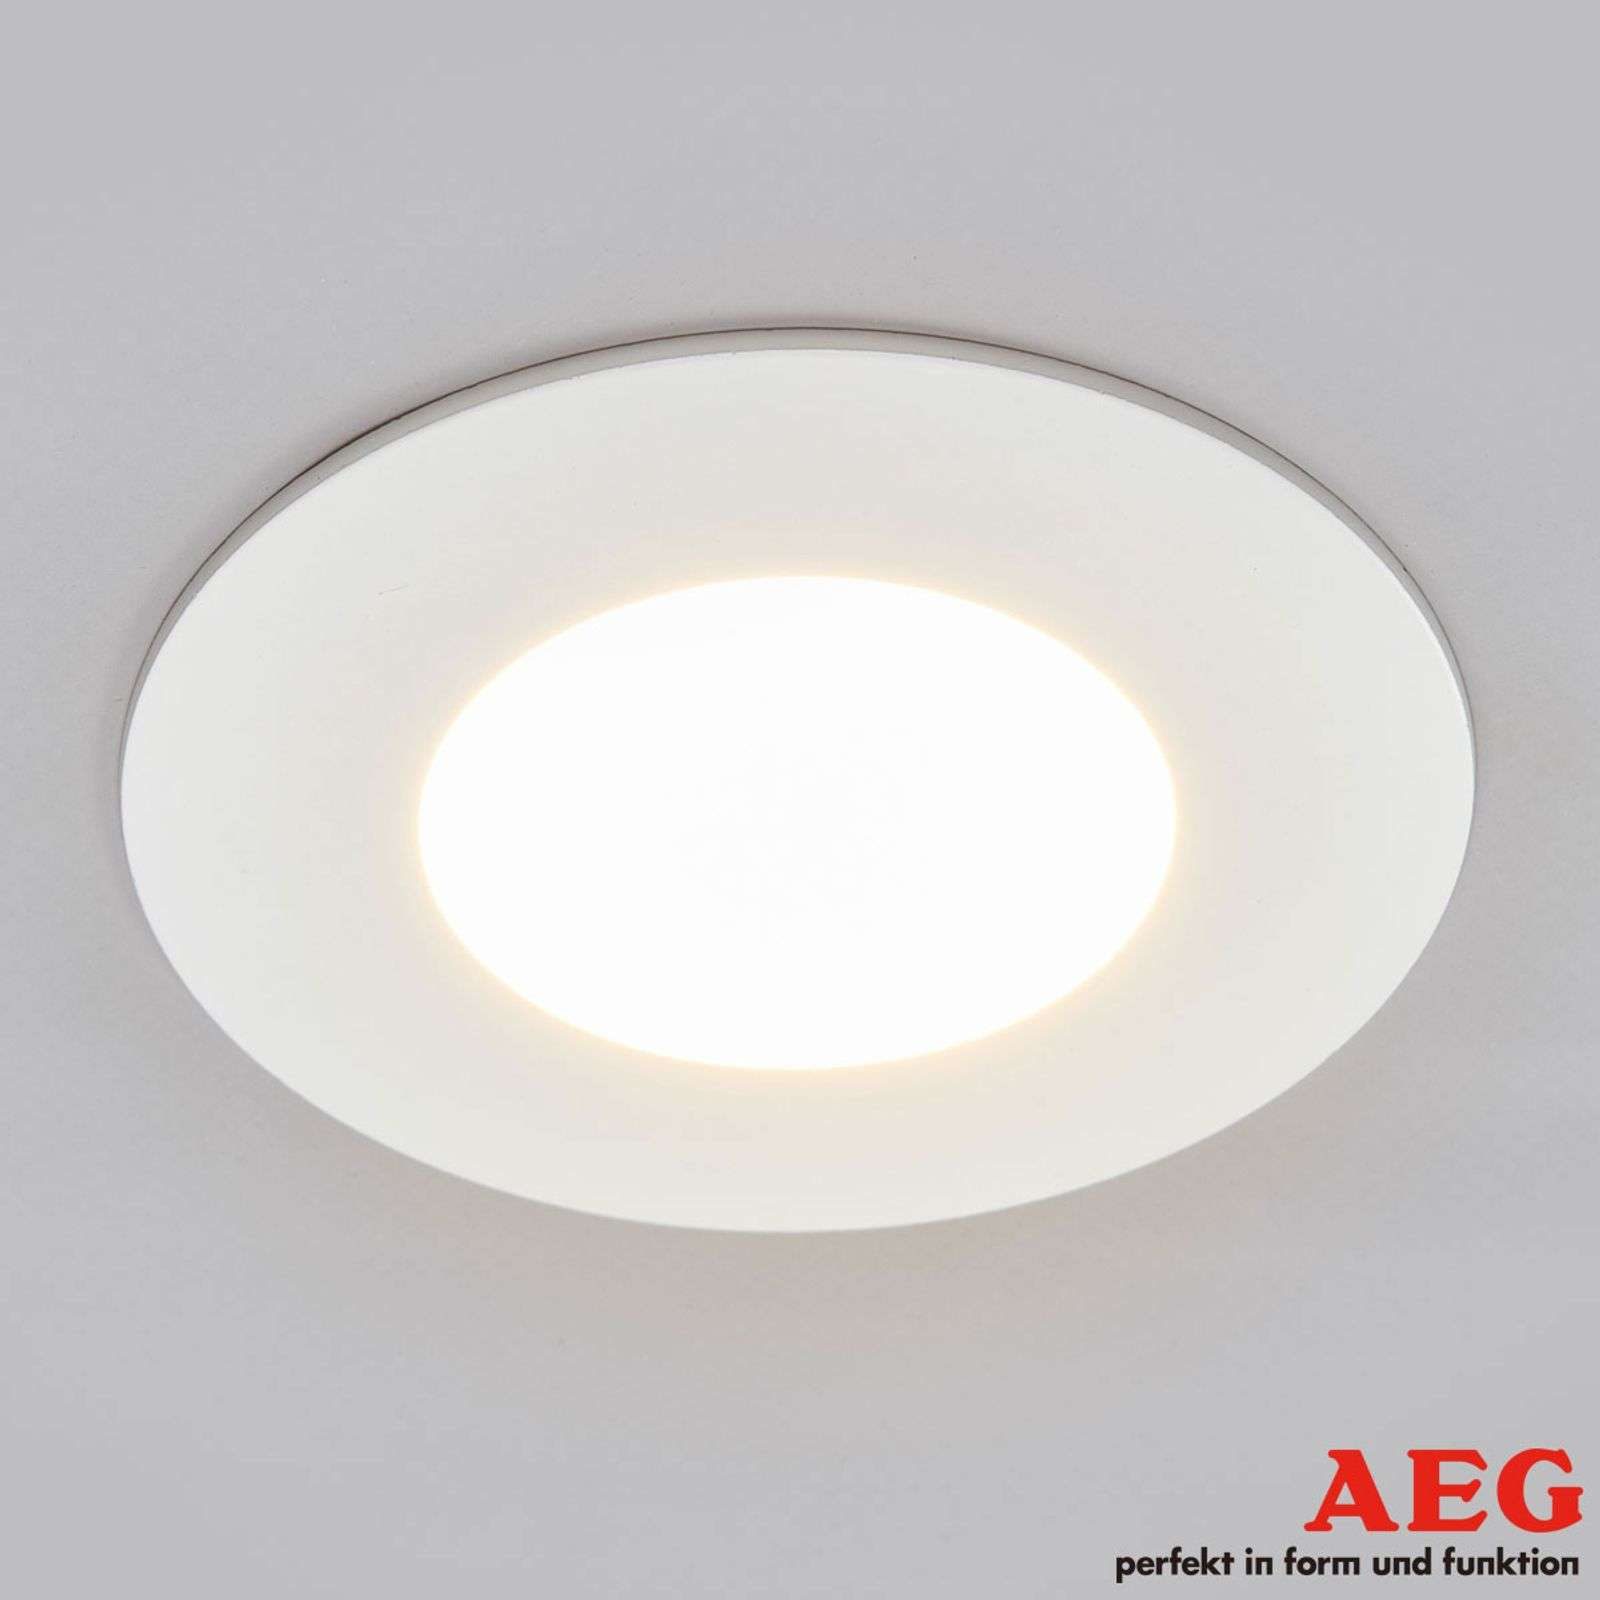 Spot encastré LED Orbita blanc AEG, variable